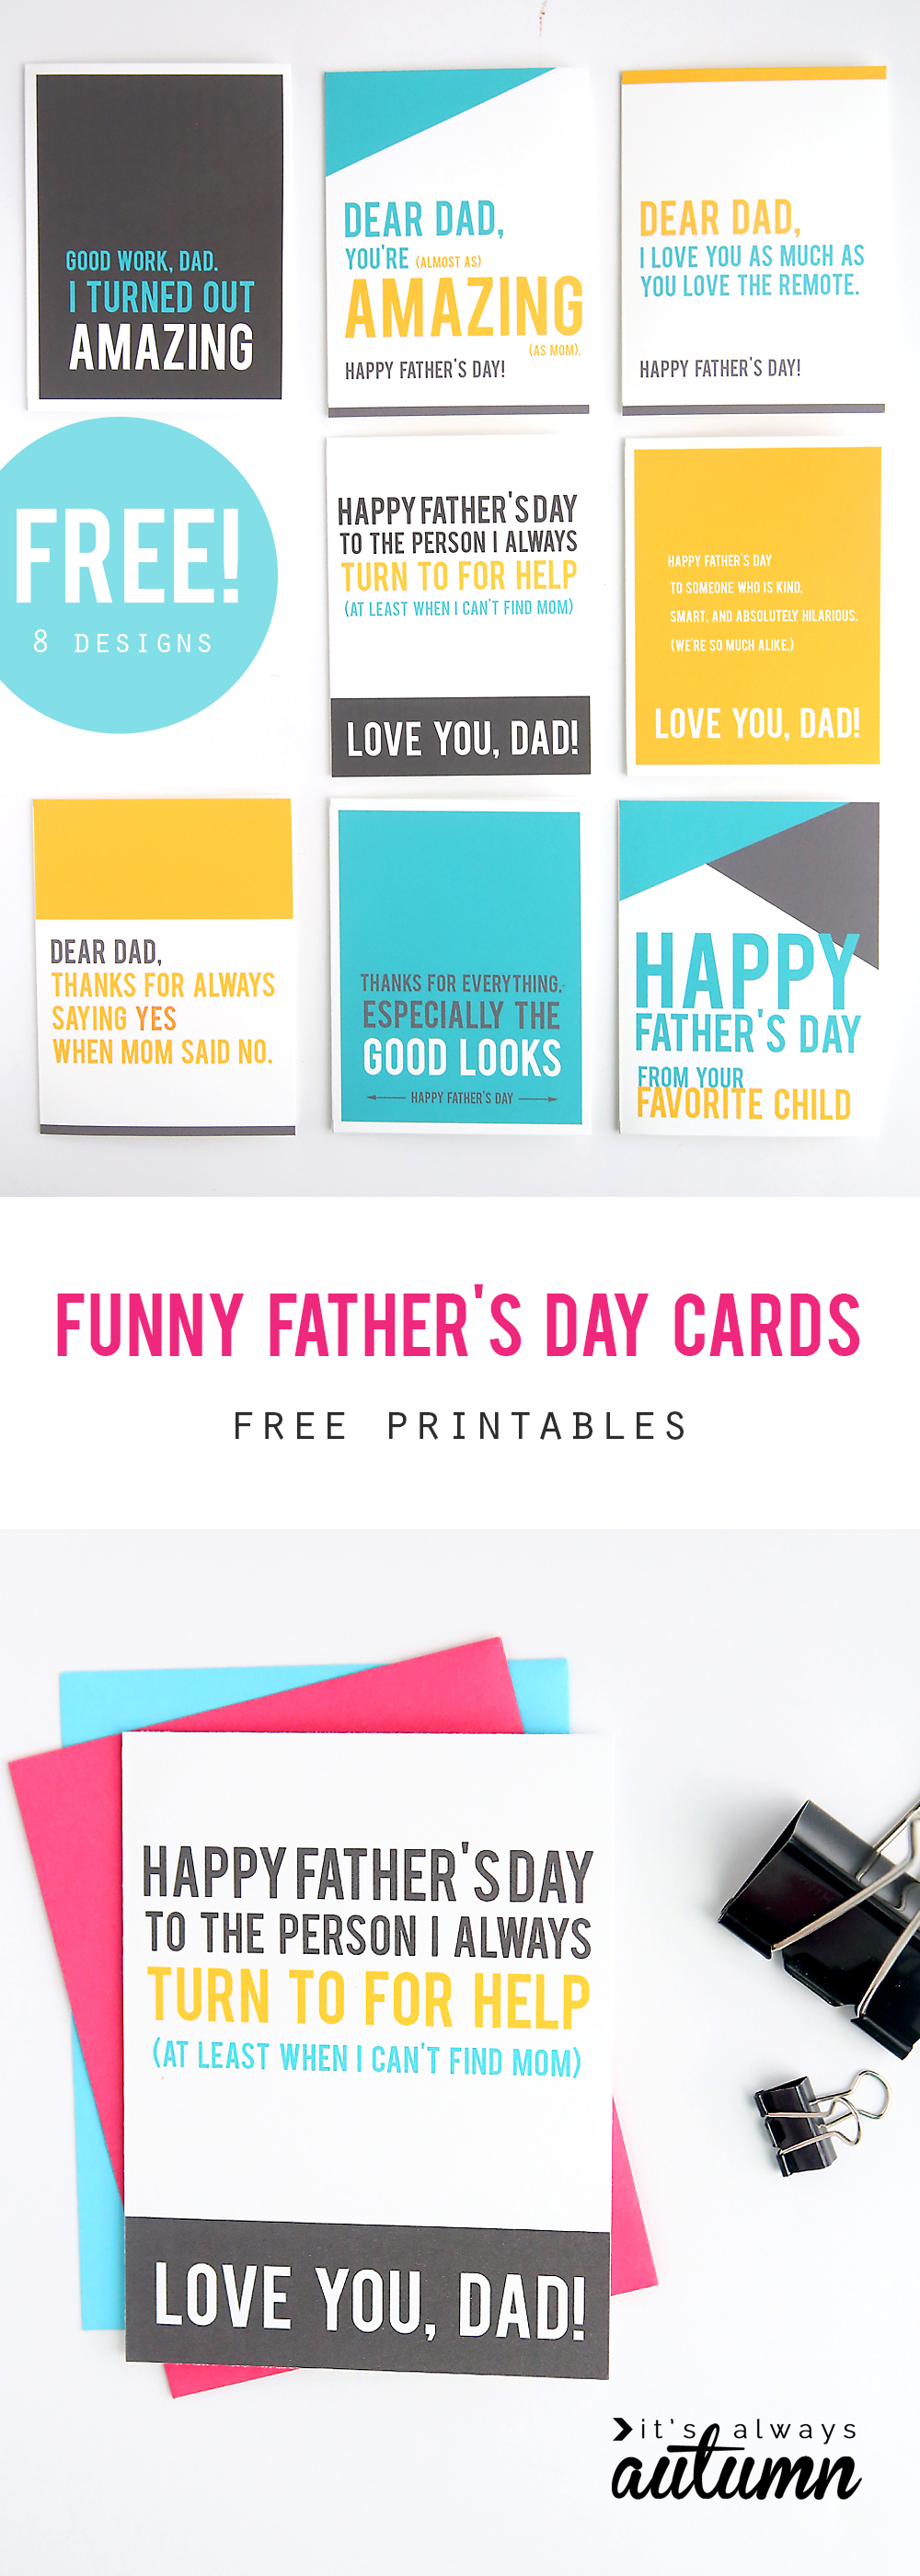 It is a picture of Sweet Free Printable Funny Father's Day Cards